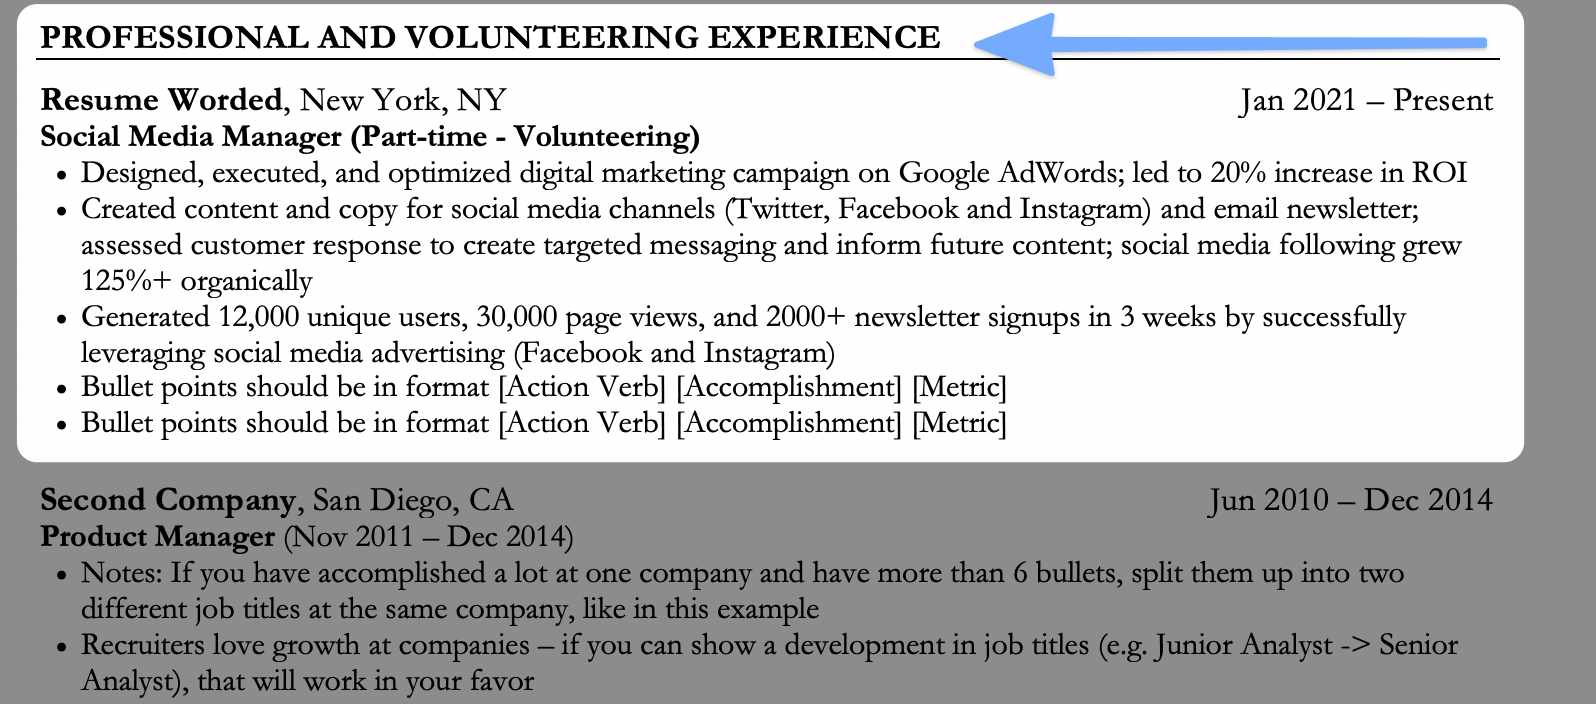 Combining two section titles into one on your resume